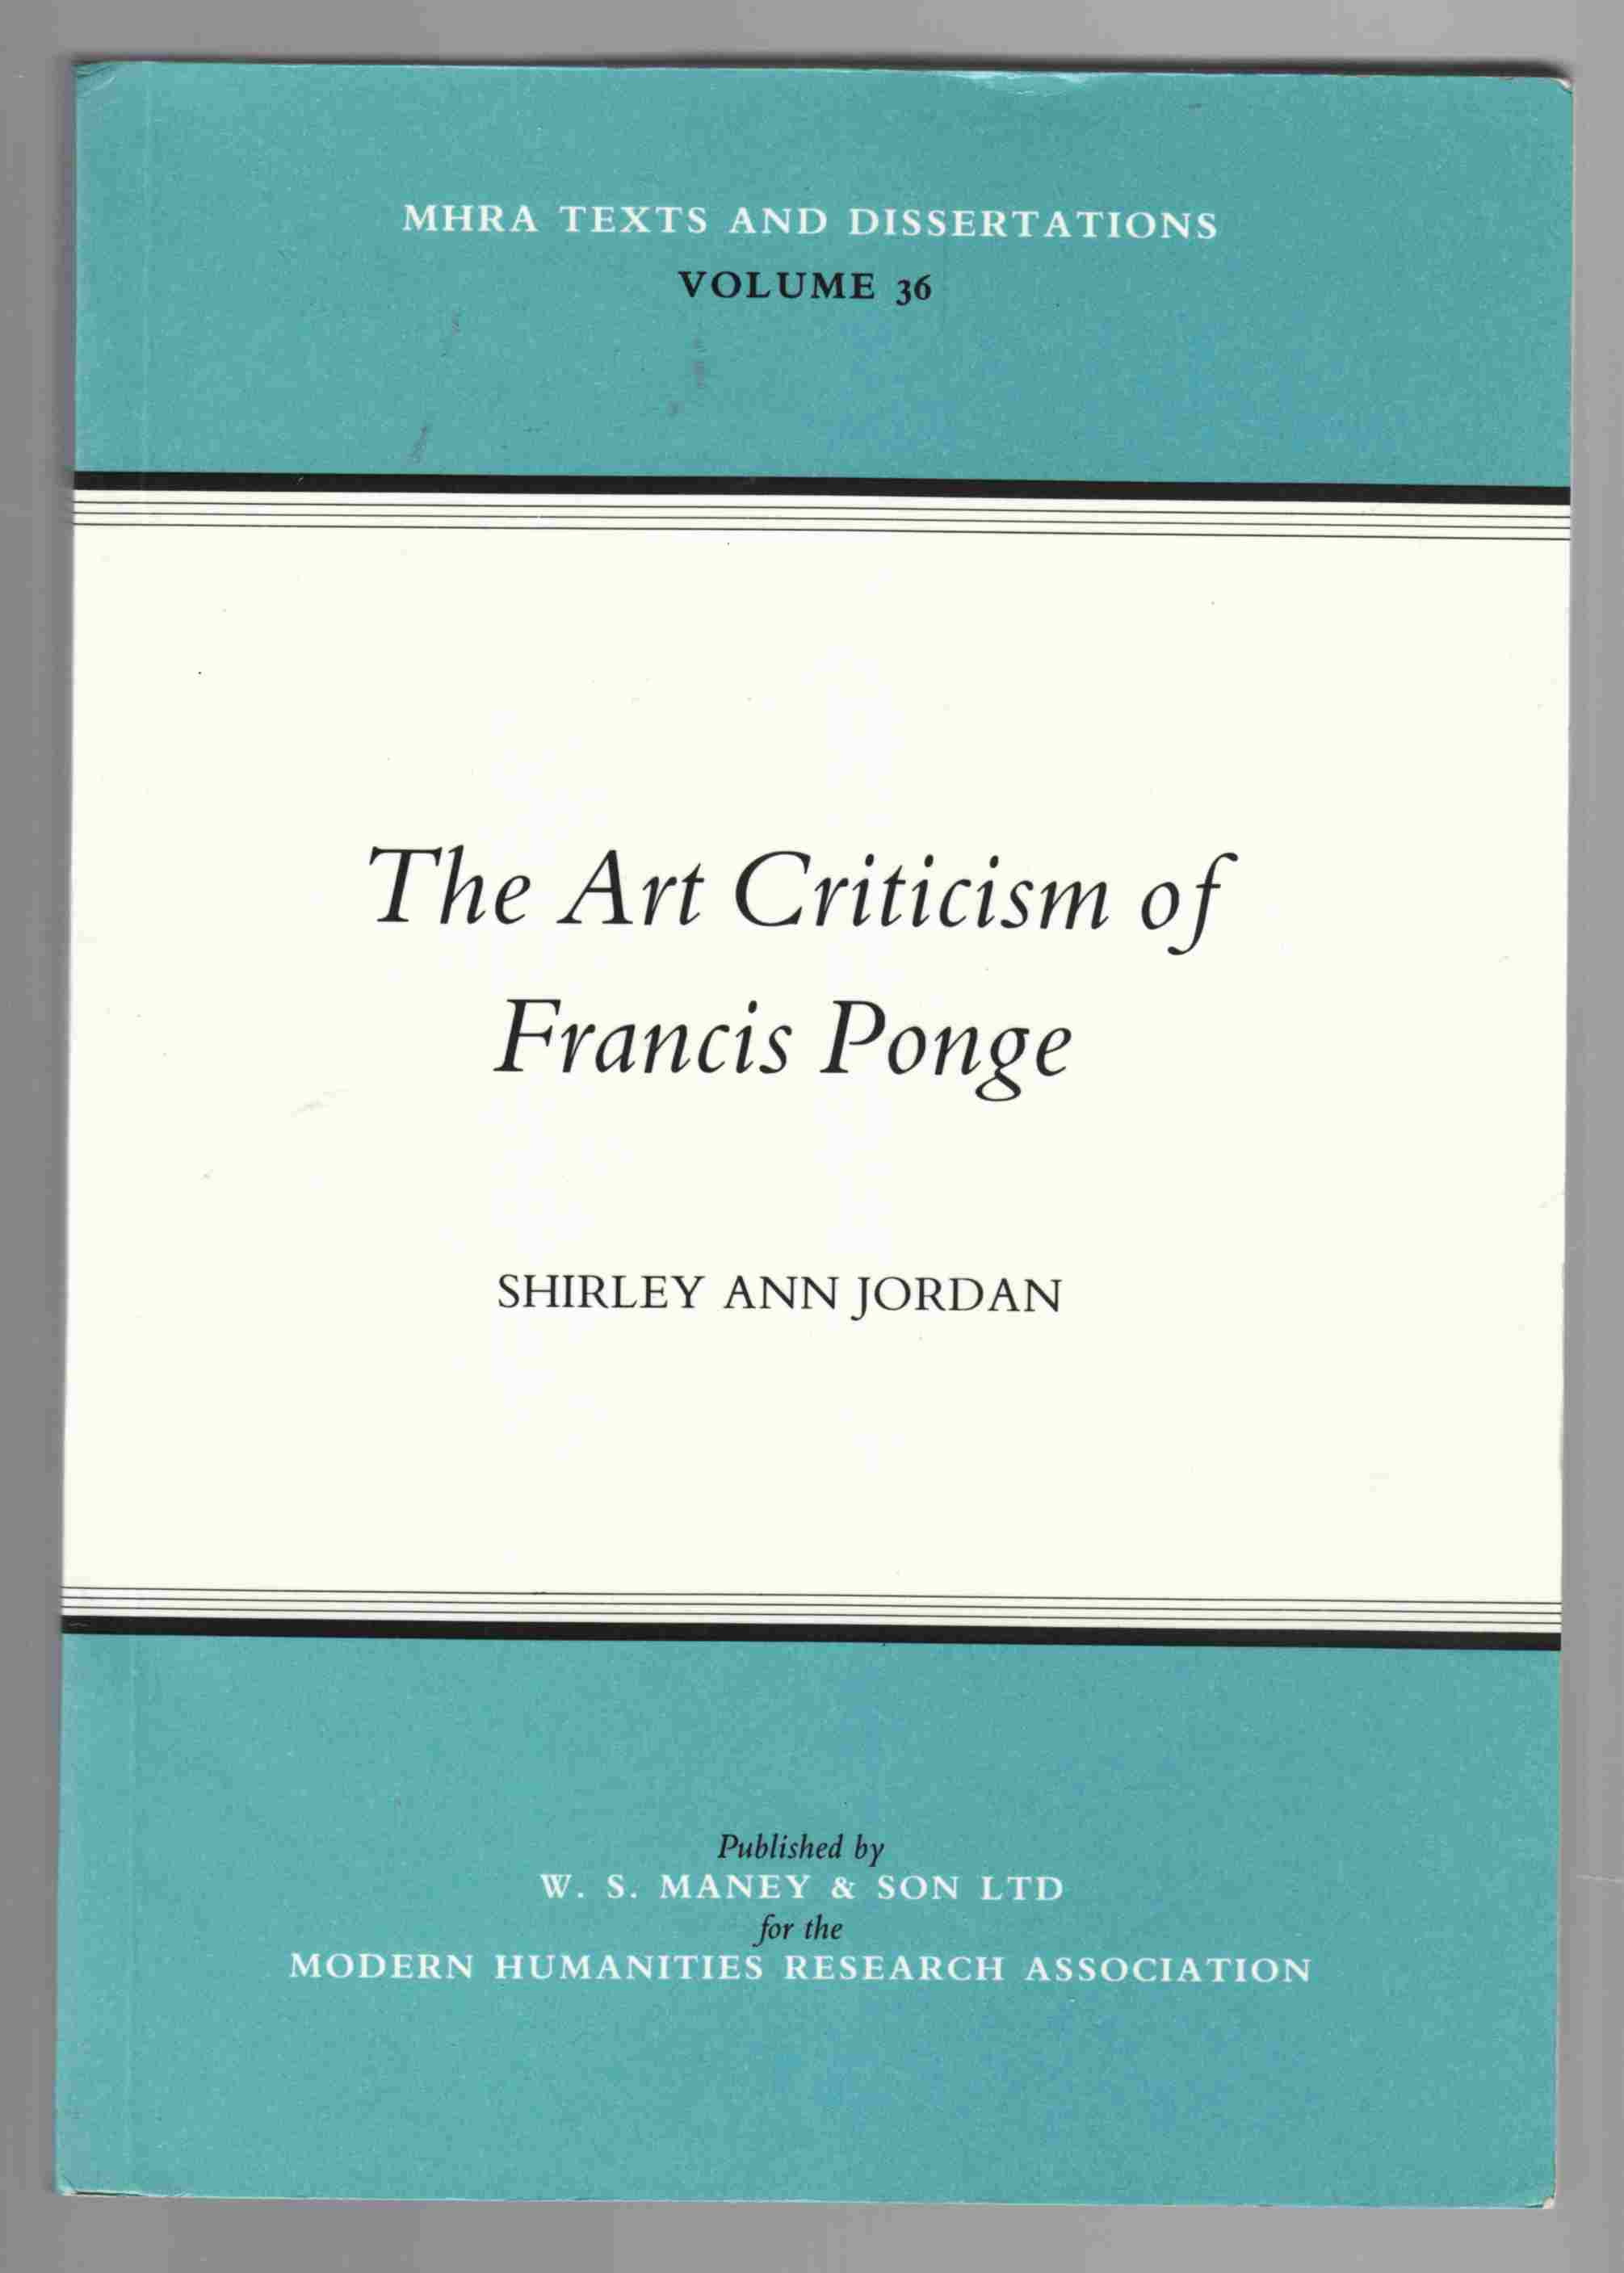 Image for The Art Criticism of Francis Ponge (Vol. 36)